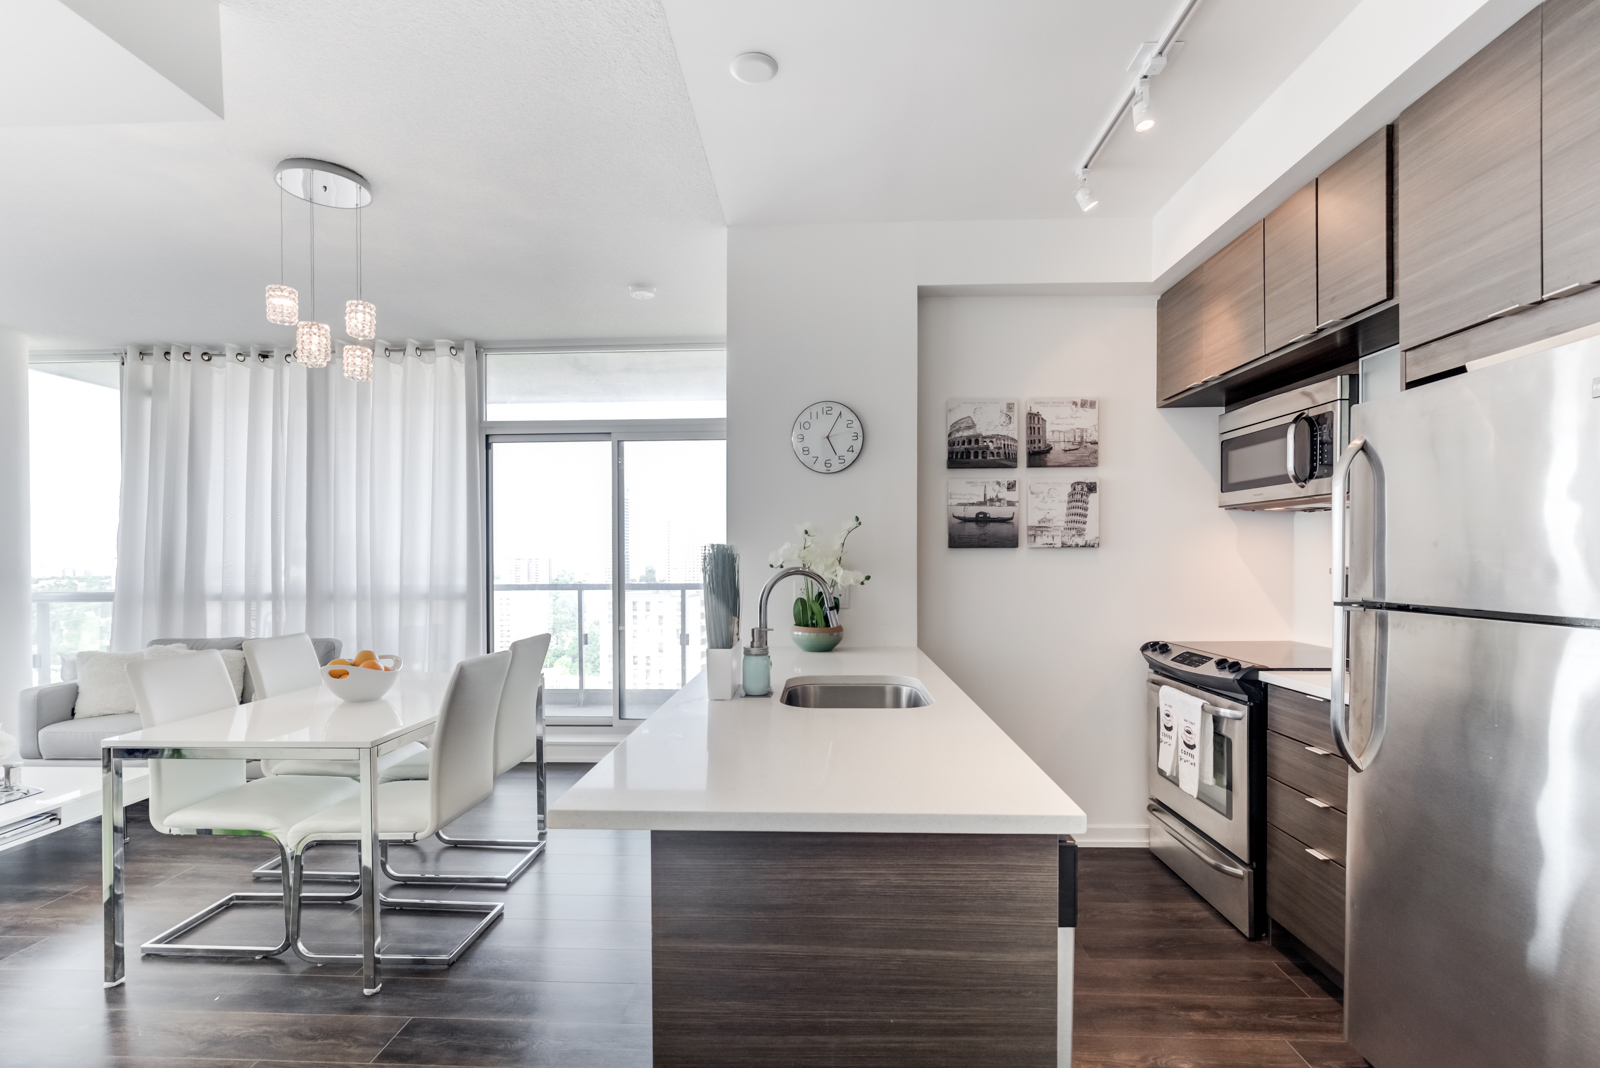 Breakfast bar with dark base and view of kitchen cabinets and appliances at 62 Forest Manor Rd Unit 1803, Toronto.